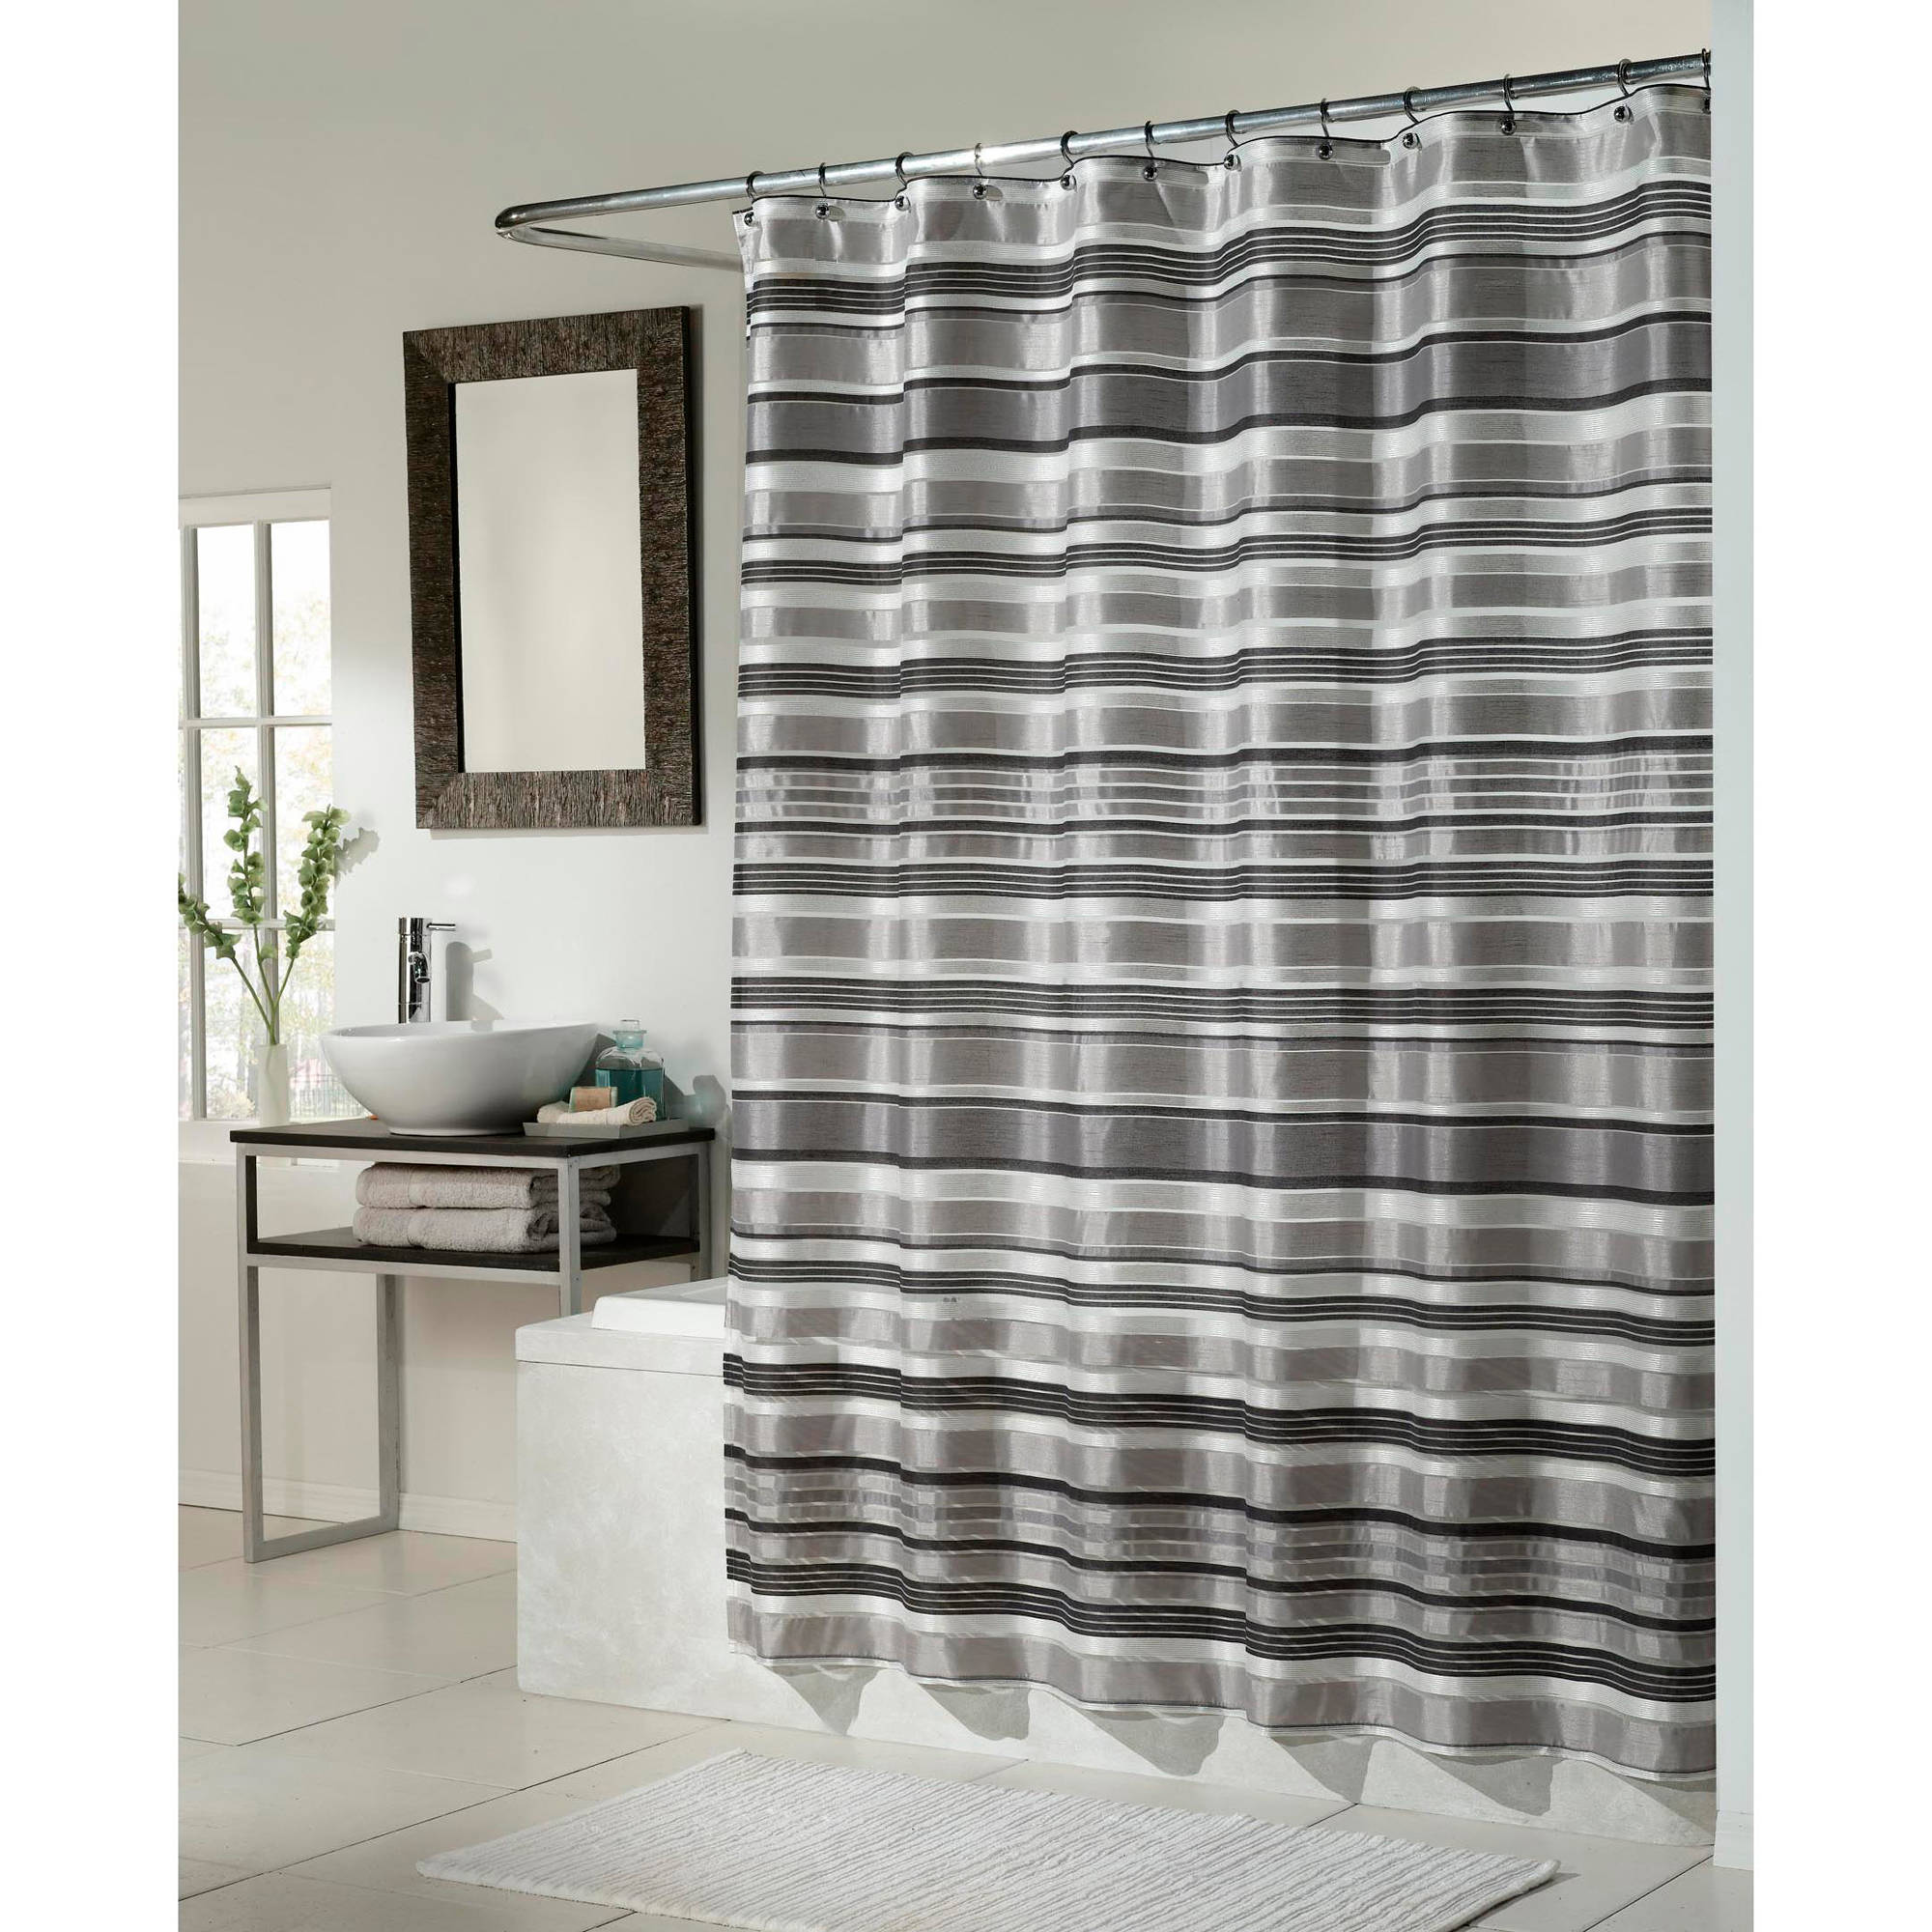 White fabric shower curtain - White Fabric Shower Curtain